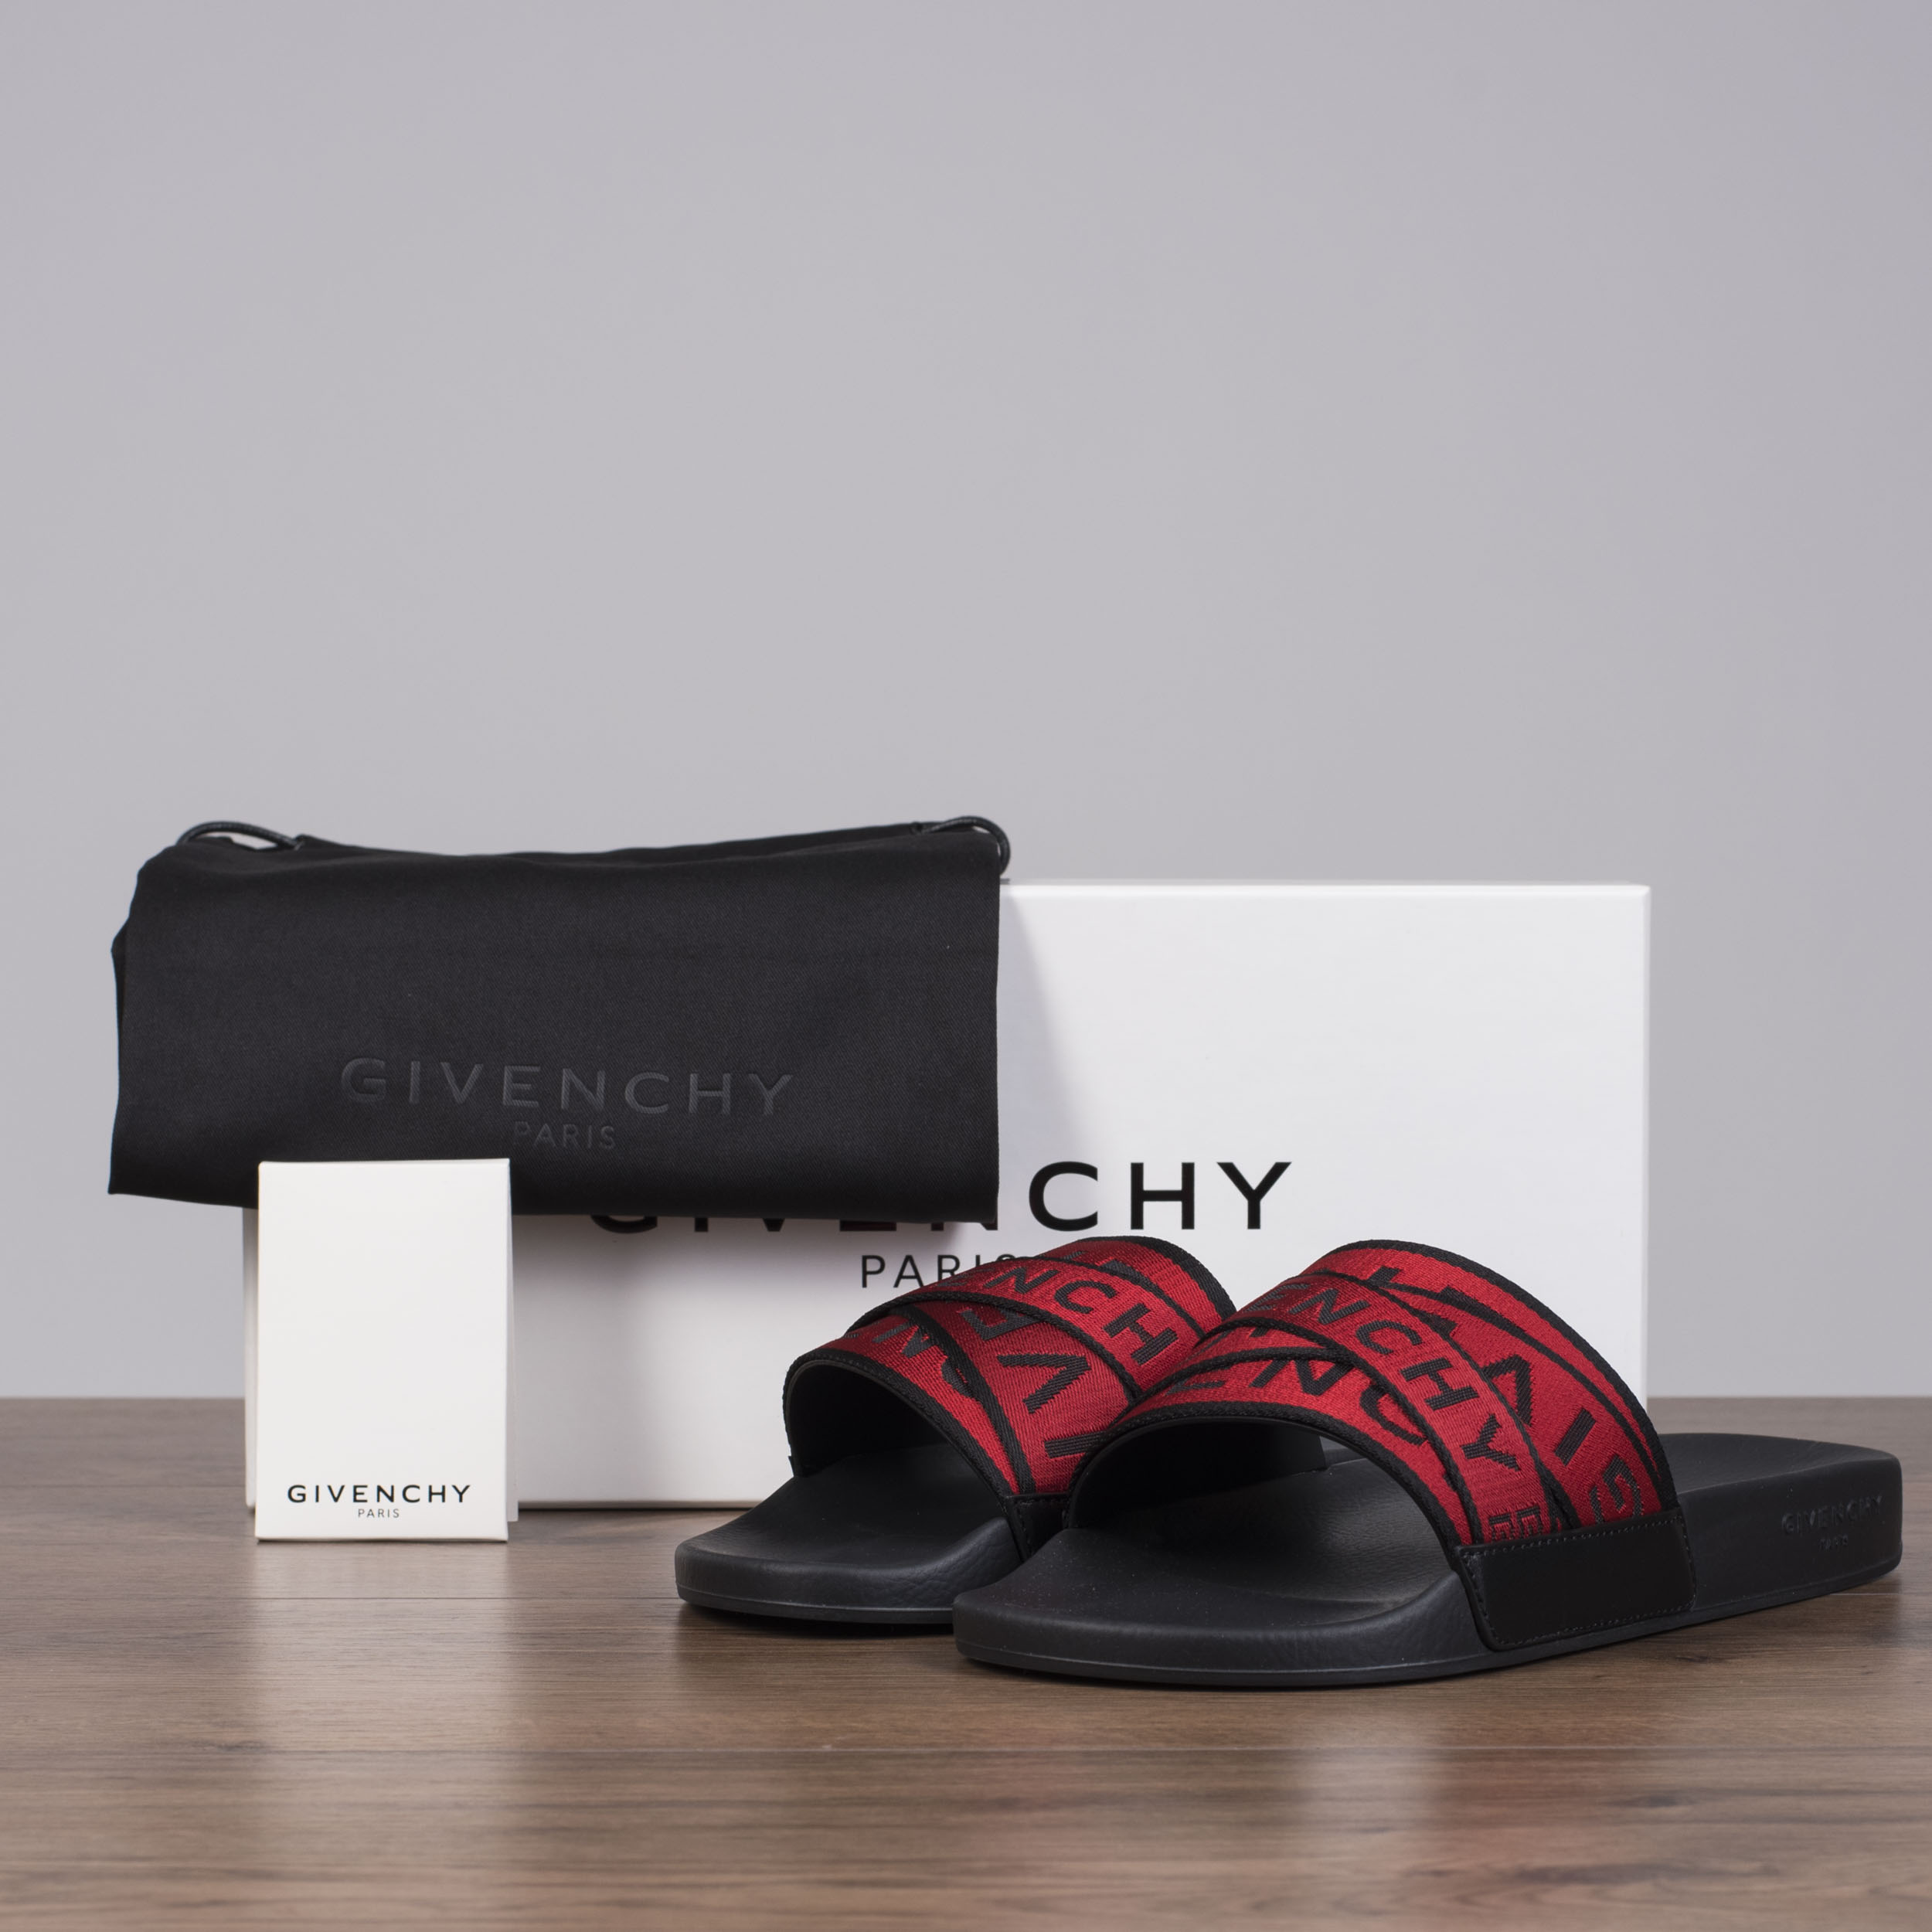 a6bd2b970dc Details about GIVENCHY 375  4G Webbing Slide Sandals In Black   Red Rubber